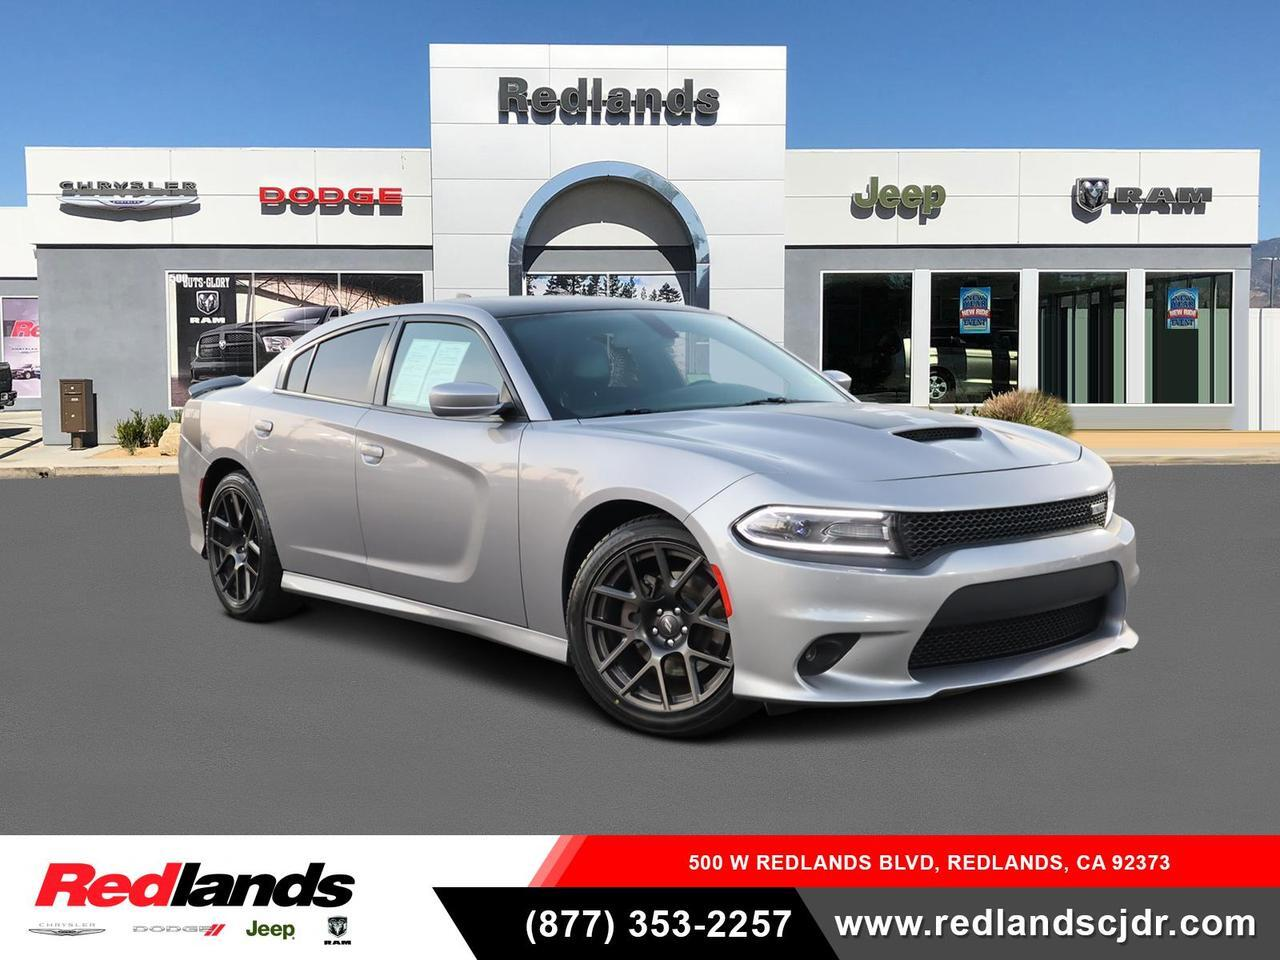 2017 Dodge Charger Daytona 340 Redlands CA